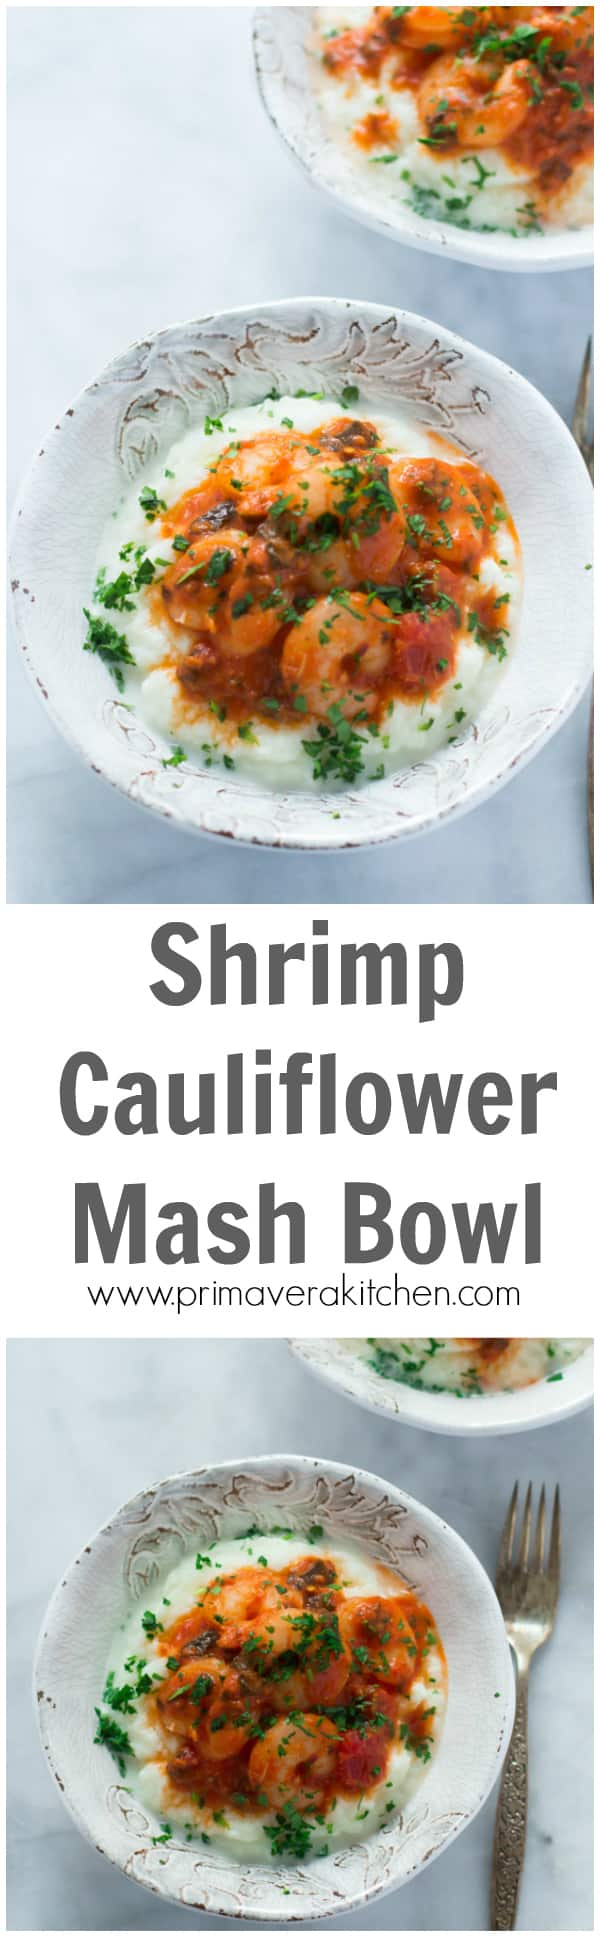 shrimp-cauliflower-mash-bowl- This Shrimp Cauliflower Mash Bowl is a great meal for those who are on the low-carb diet. Also it's ready in less than 30 minutes, easy and quick to make and very flavourful!